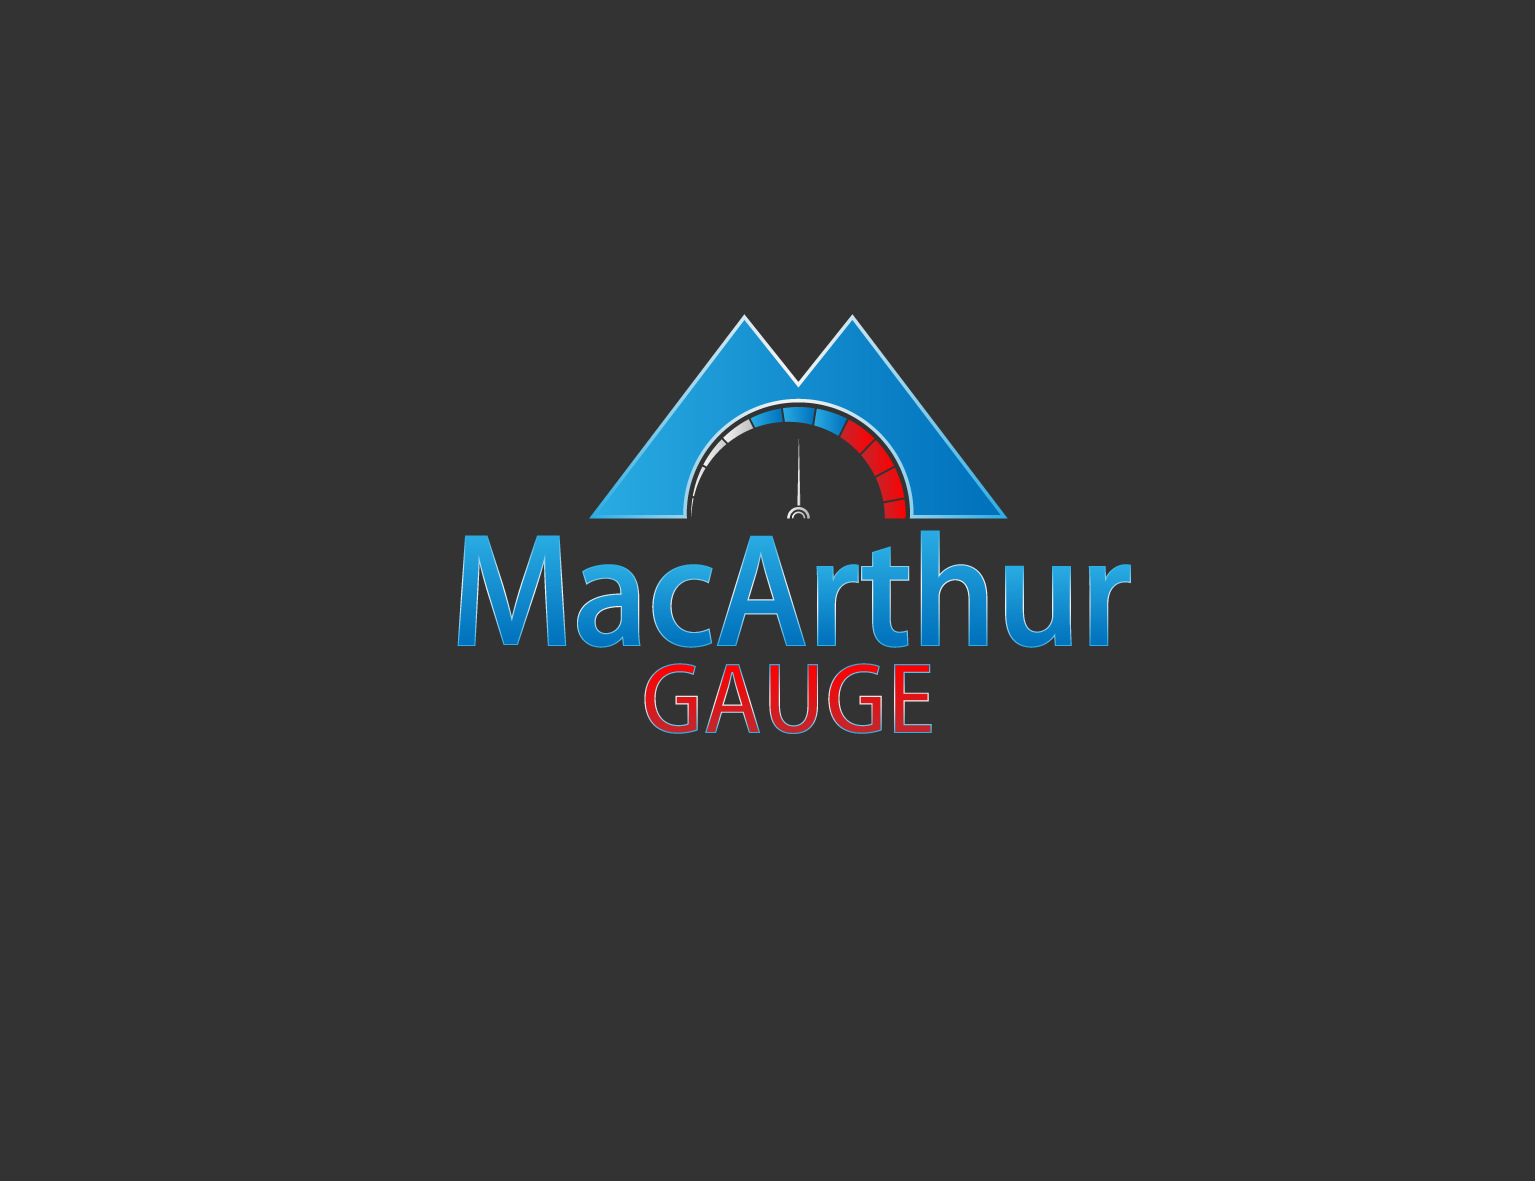 Logo Design by 3draw - Entry No. 233 in the Logo Design Contest Fun Logo Design for MacArthur Gauge.